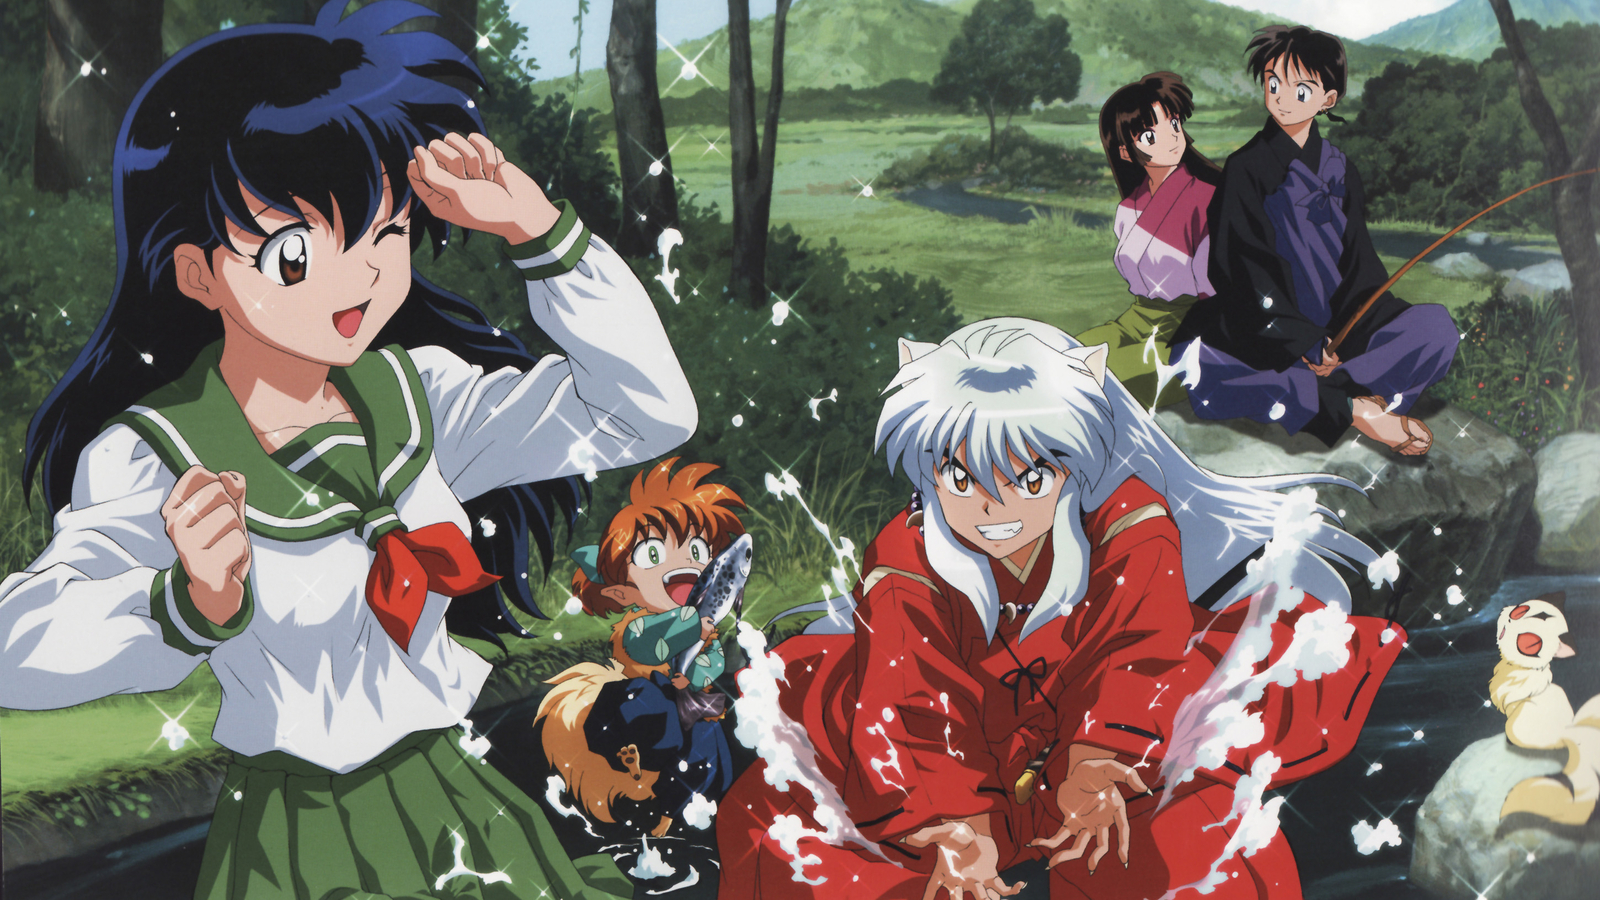 demons inuyasha kirara kagome HD Wallpaper